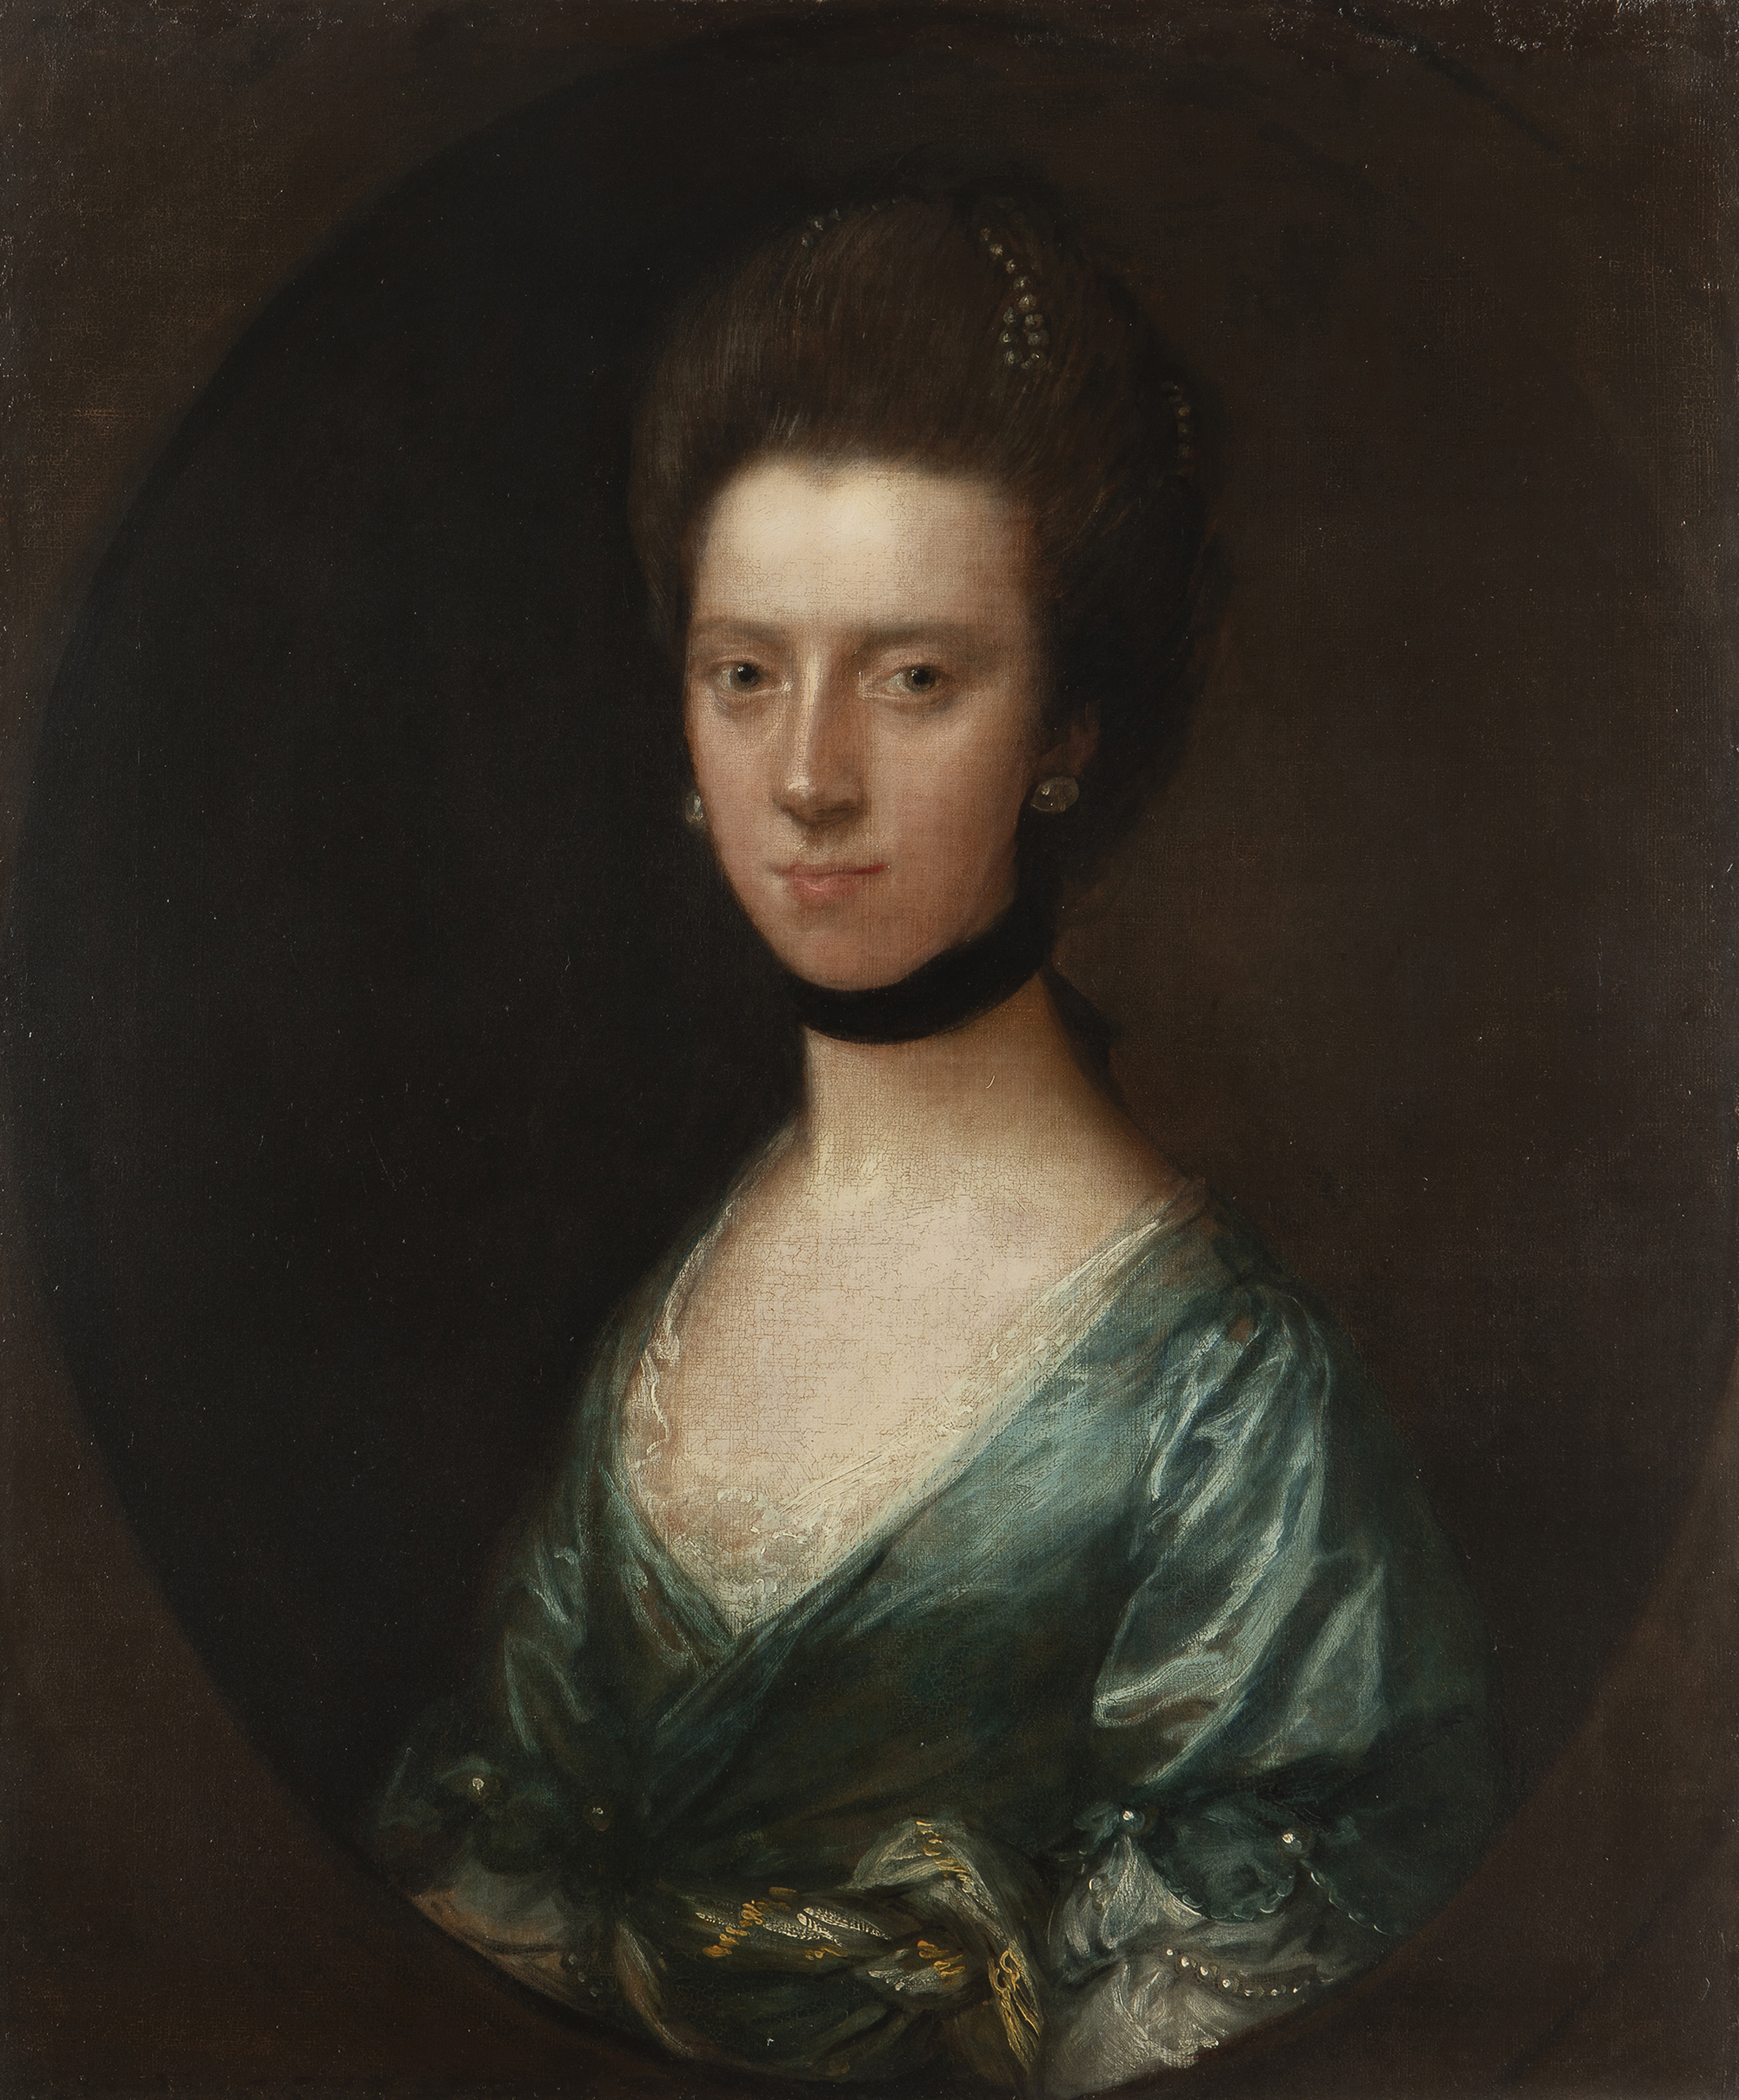 Thomas Gainsborough (1727-1788 British) Portrait of Mrs. Isaac Elton, bust-length, Oil on canvas laid to canvas, in a painted oval, est: $50,000-70,000